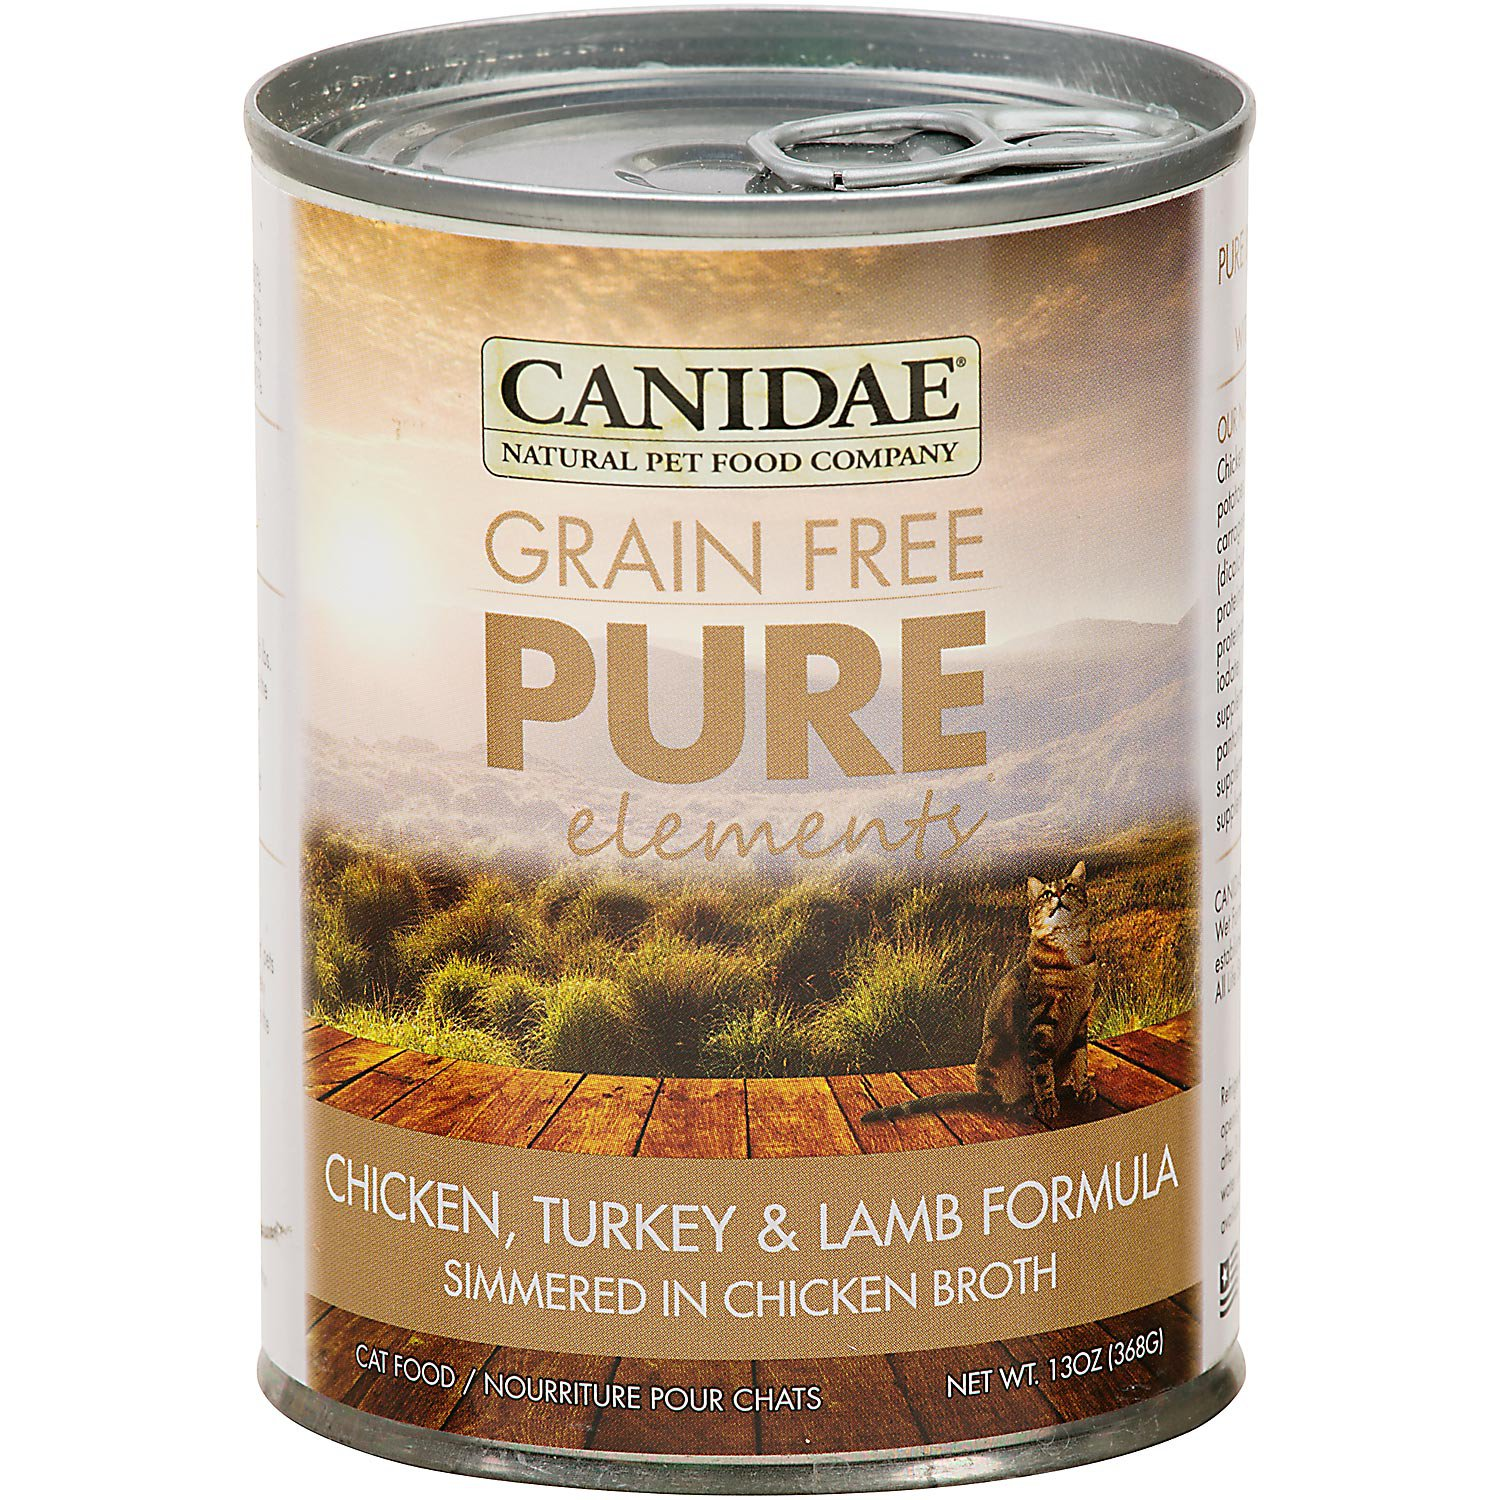 Canidae Grain Free Pure Elements Chicken, Turkey & Lamb Canned Cat Food